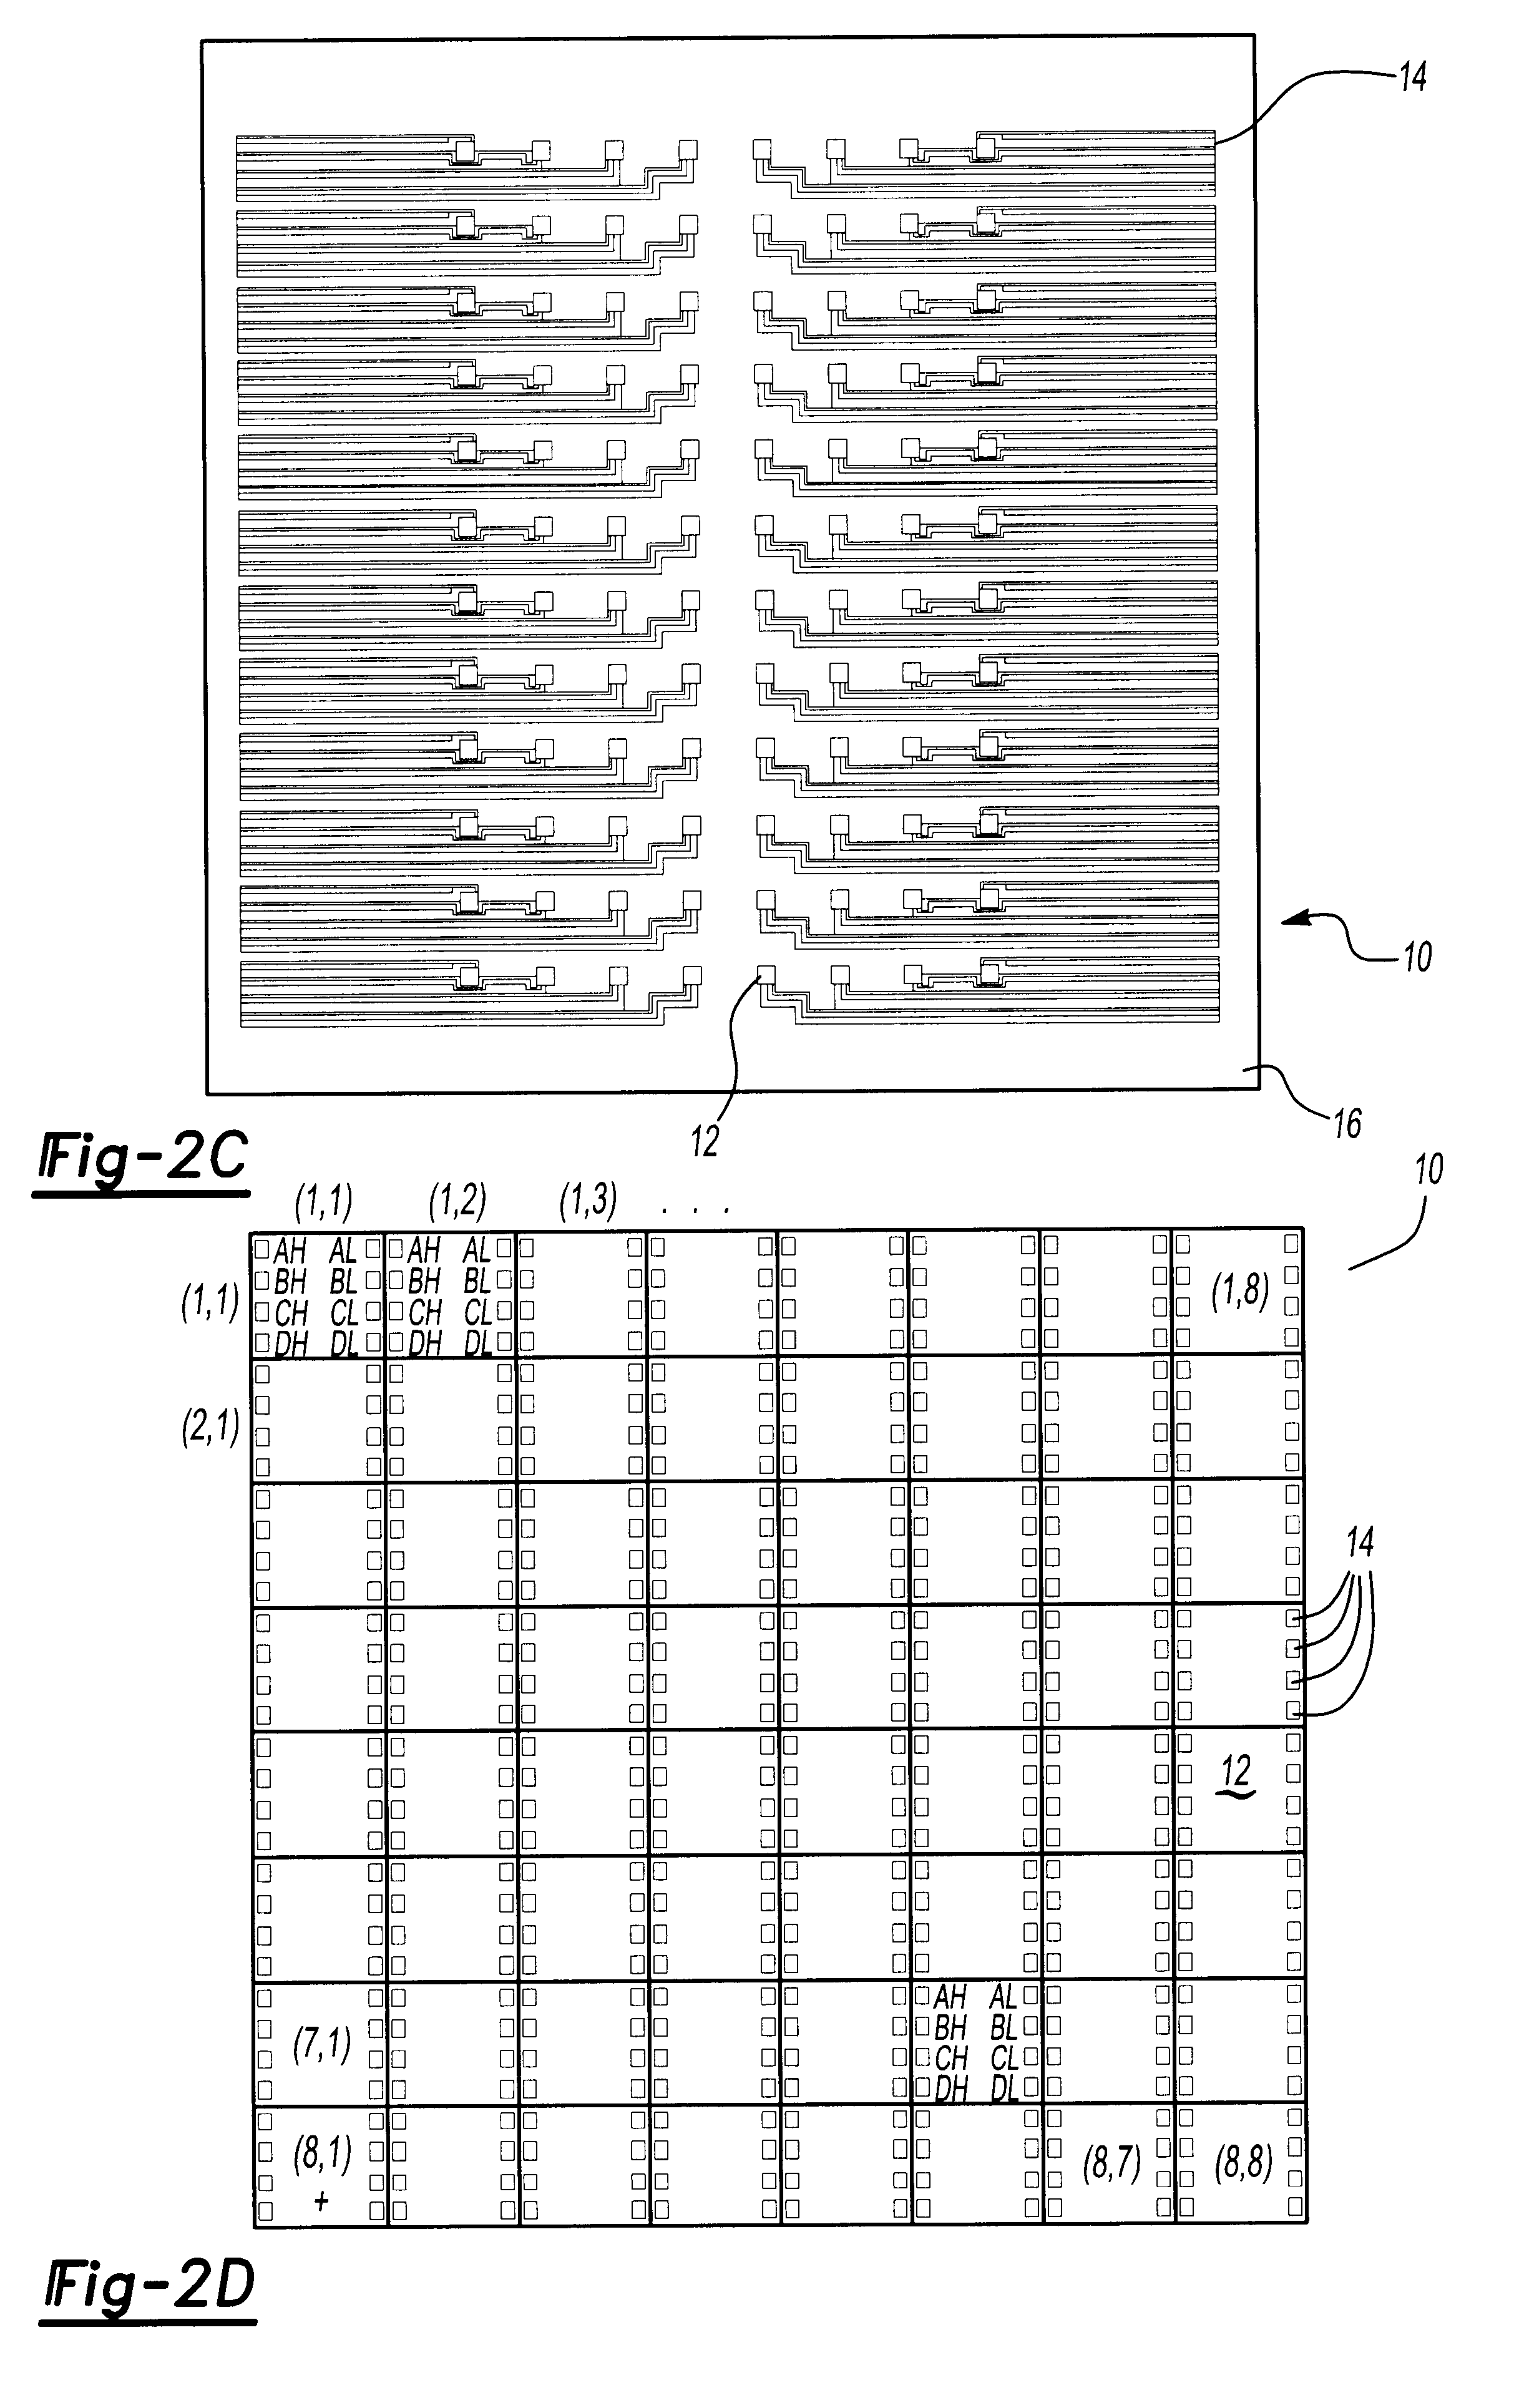 Patent Us6553318 Method For Conducting Sensor Array Based Rapid Completed Lockin Amplifier Circuit Board Alternate View Drawing